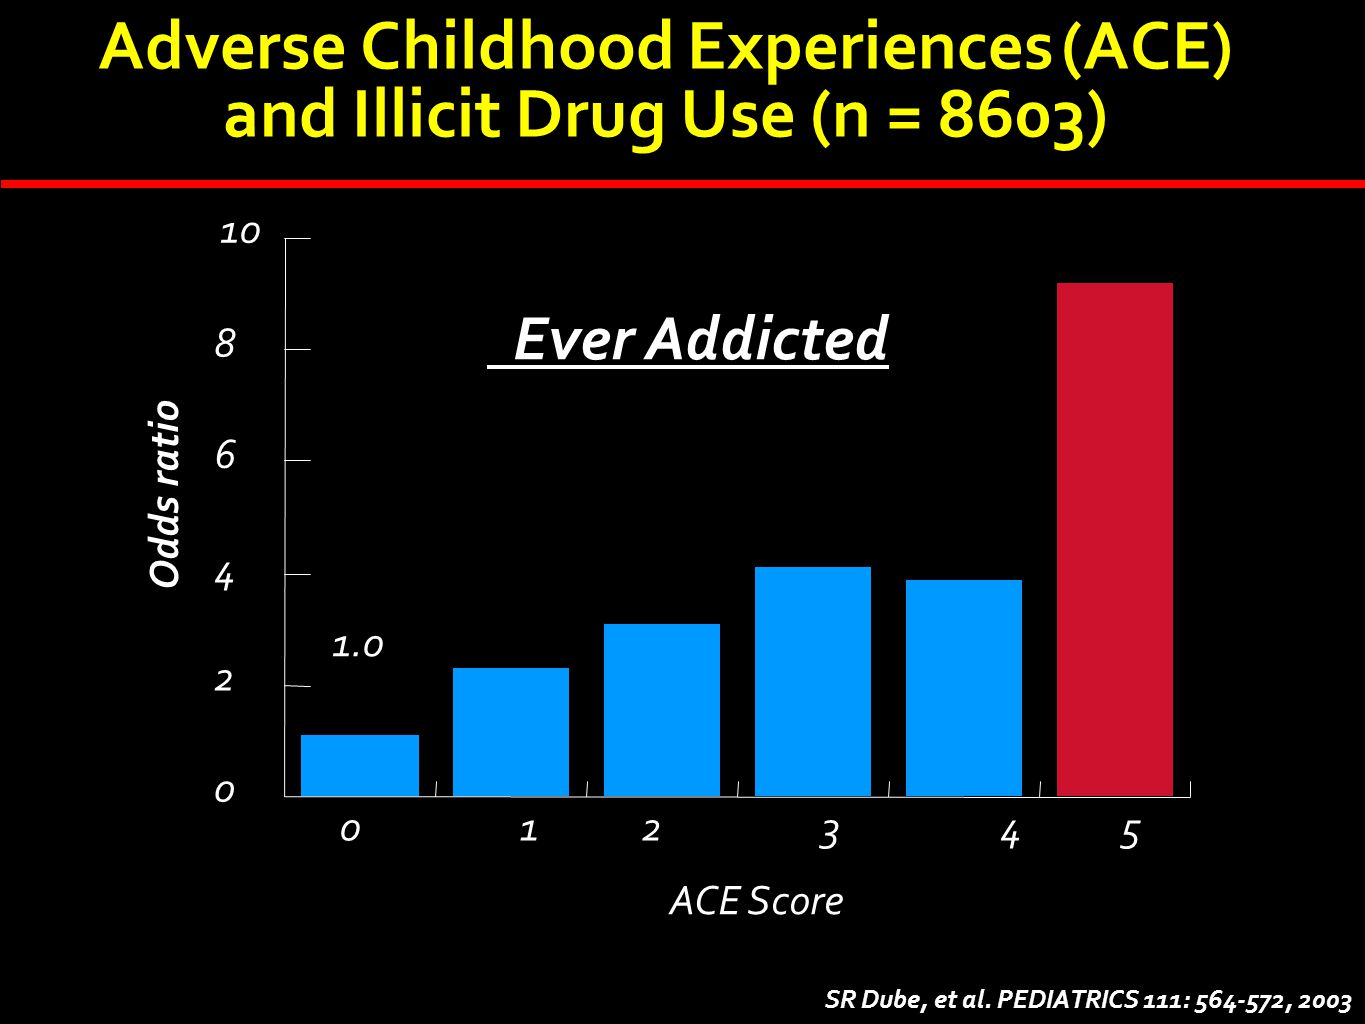 Adverse Childhood Experiences (ACE) and Illicit Drug Use (n = 8603)